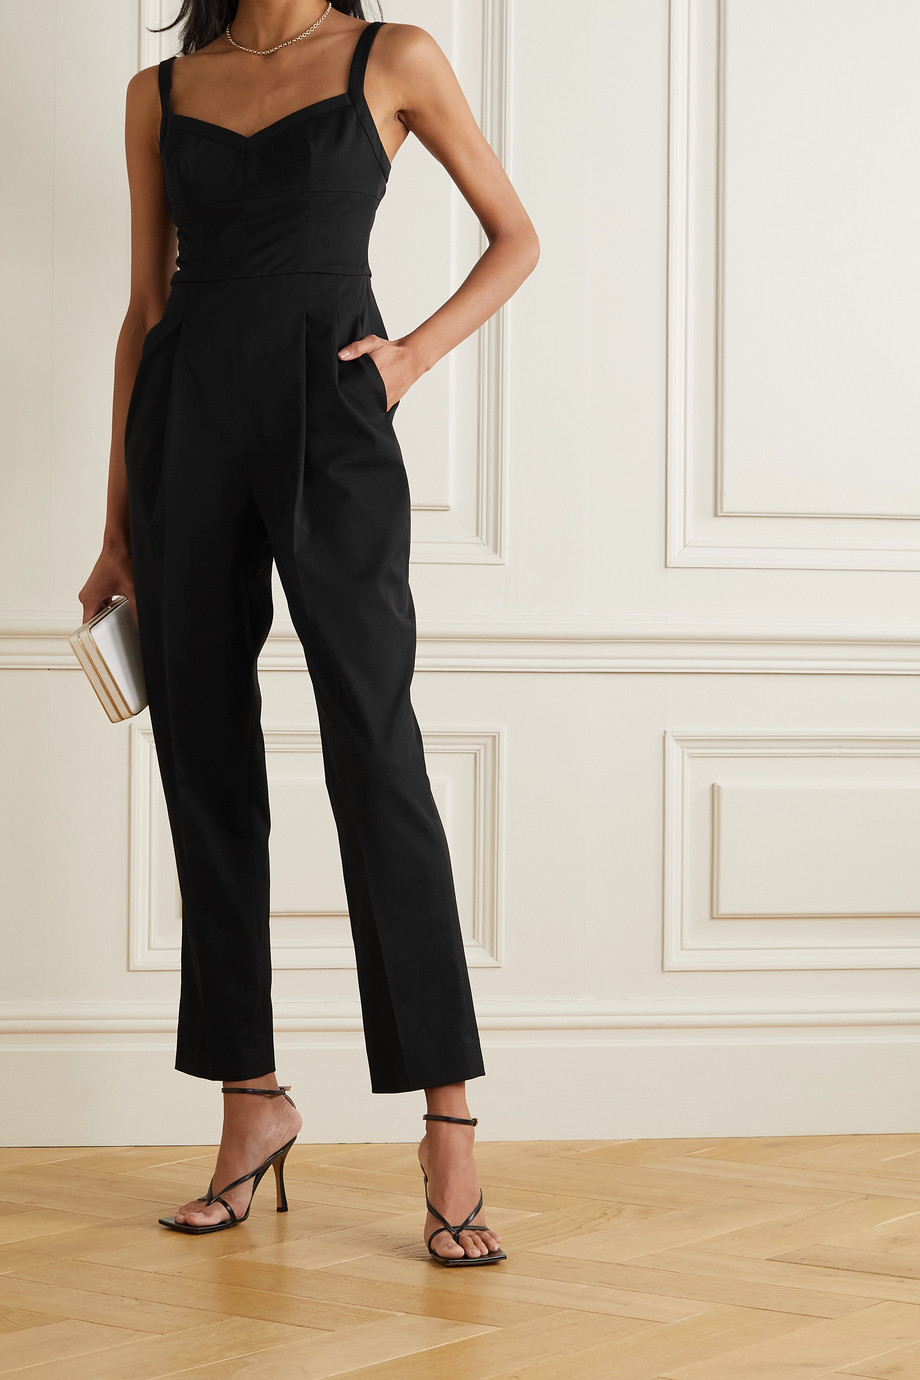 EMILIA WICKSTEAD Pleated stretch-cady jumpsuit